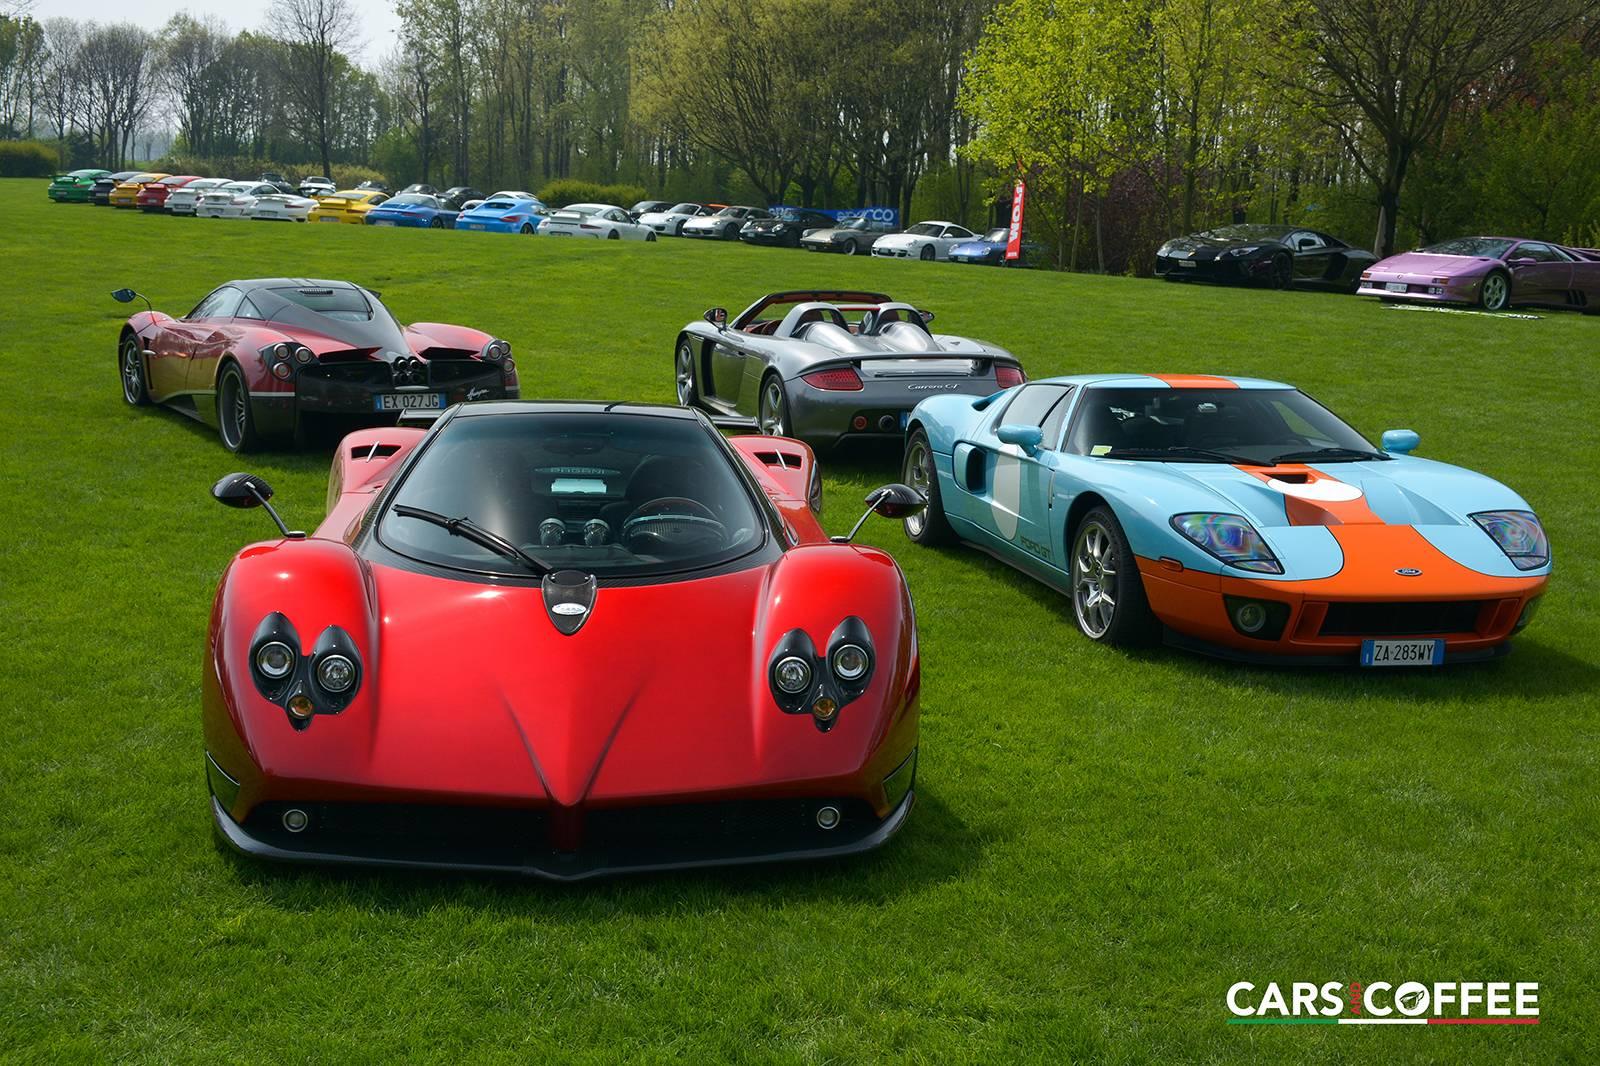 Italy Cars: 2015 Cars And Coffee Italy Part 1